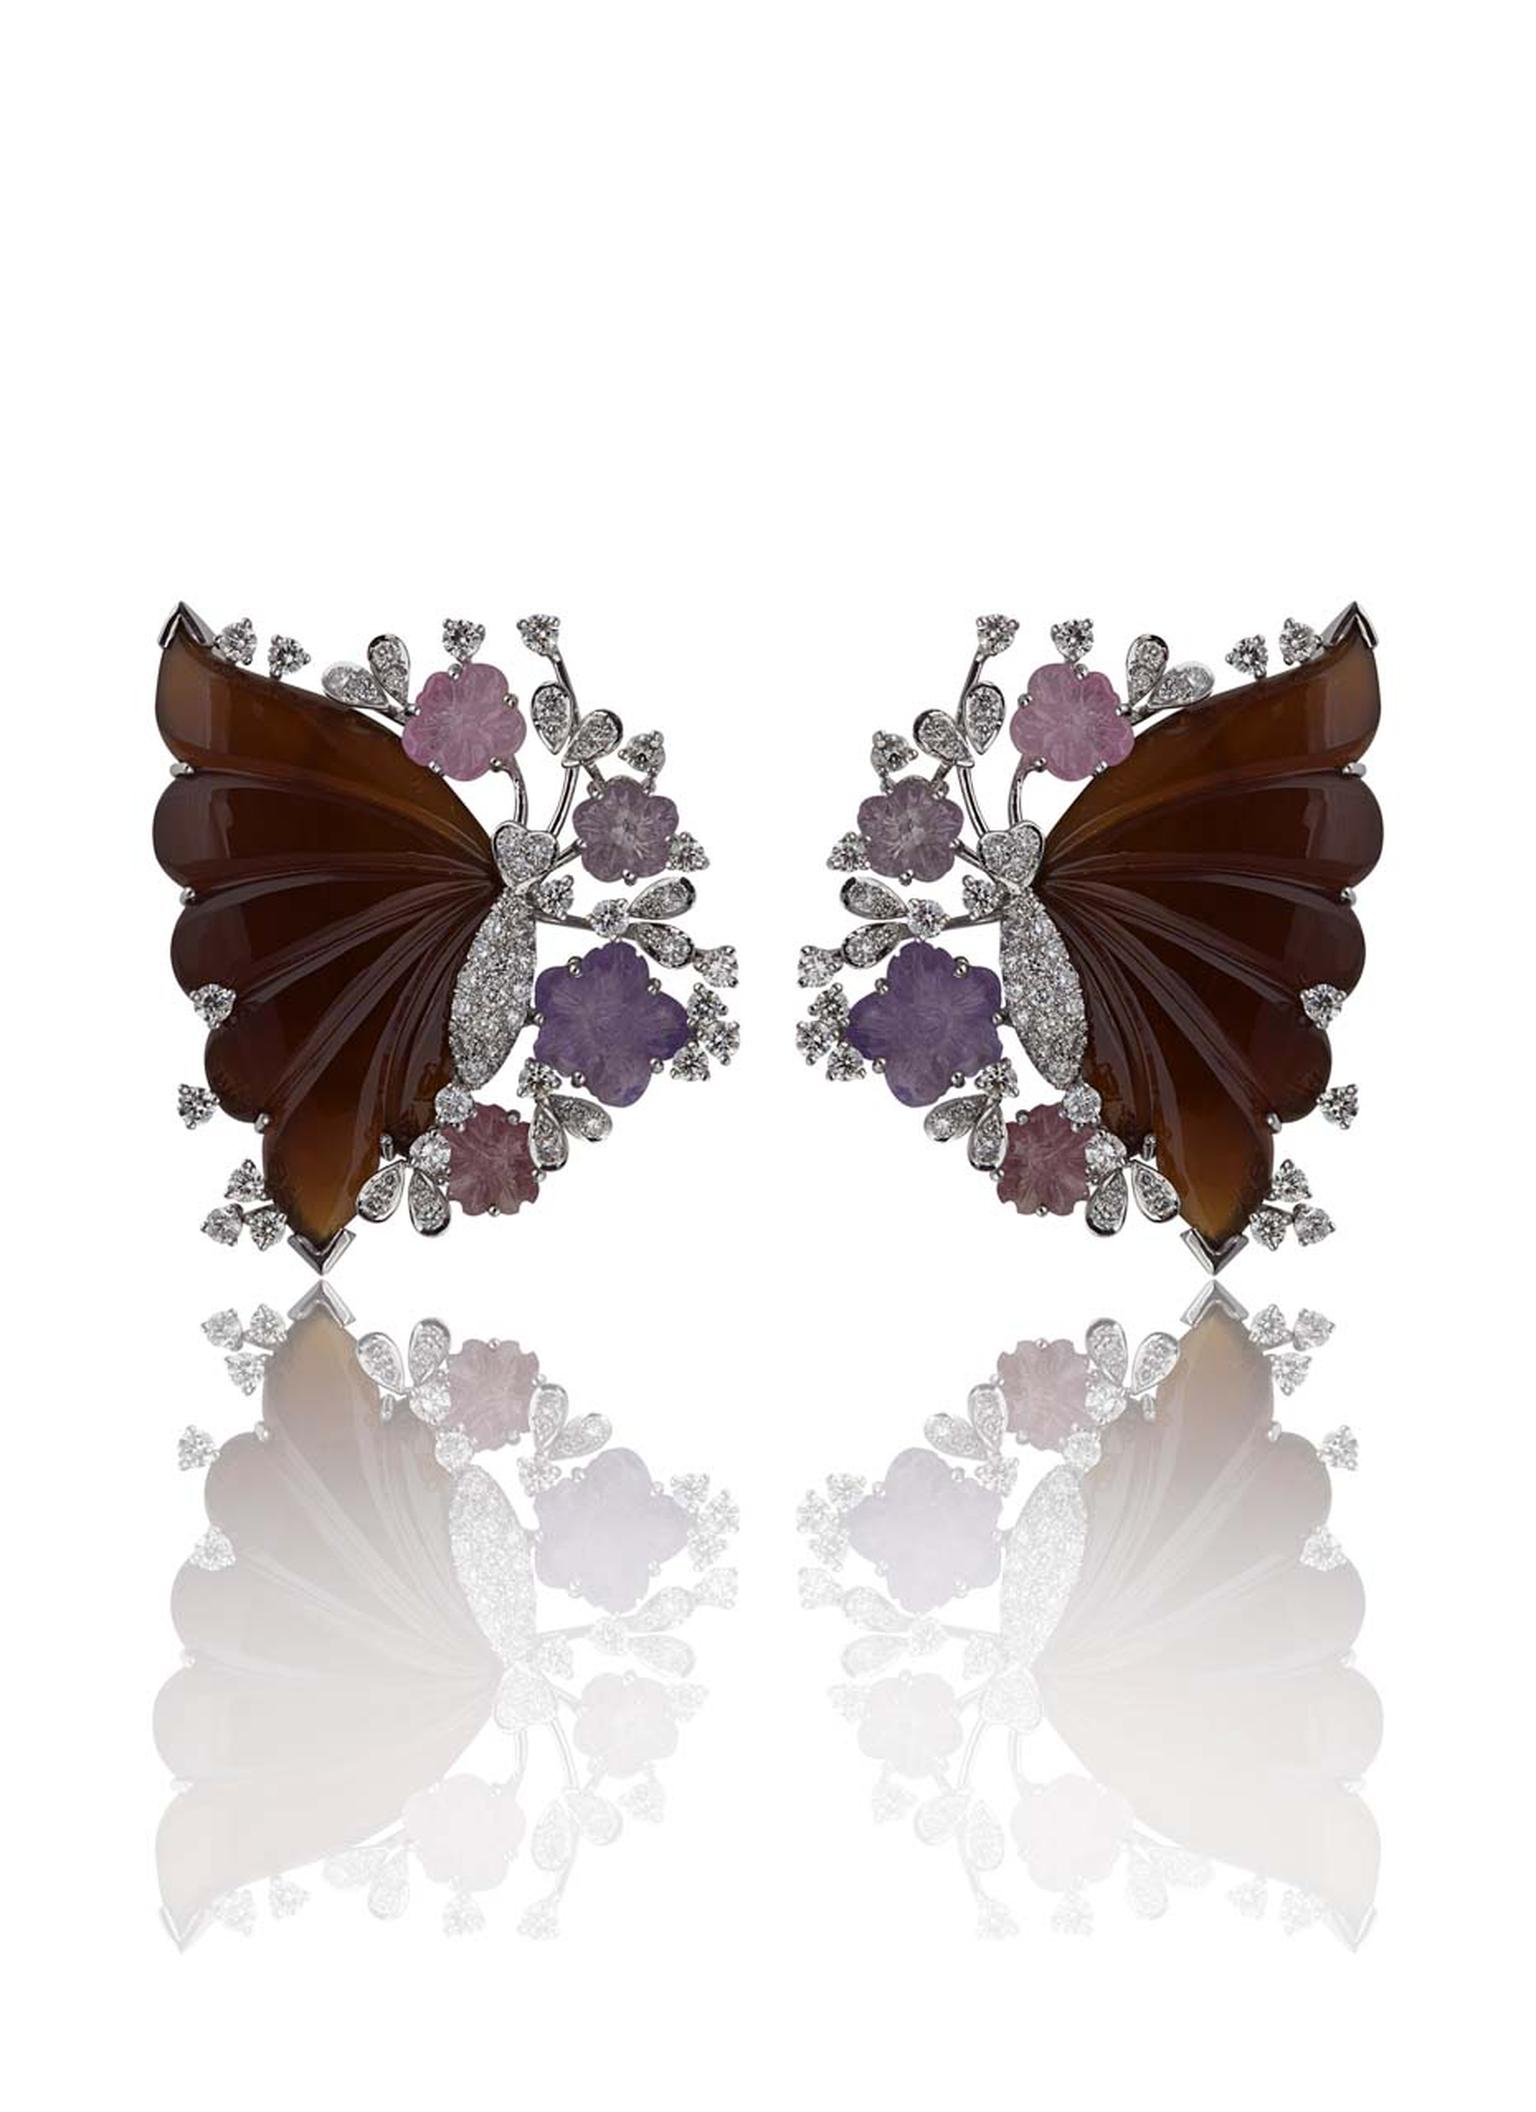 Mirari Butterfly Pavilion earrings with deep red butterfly wings that contrast beautifully with the pastel-coloured flowers and glittering diamonds.